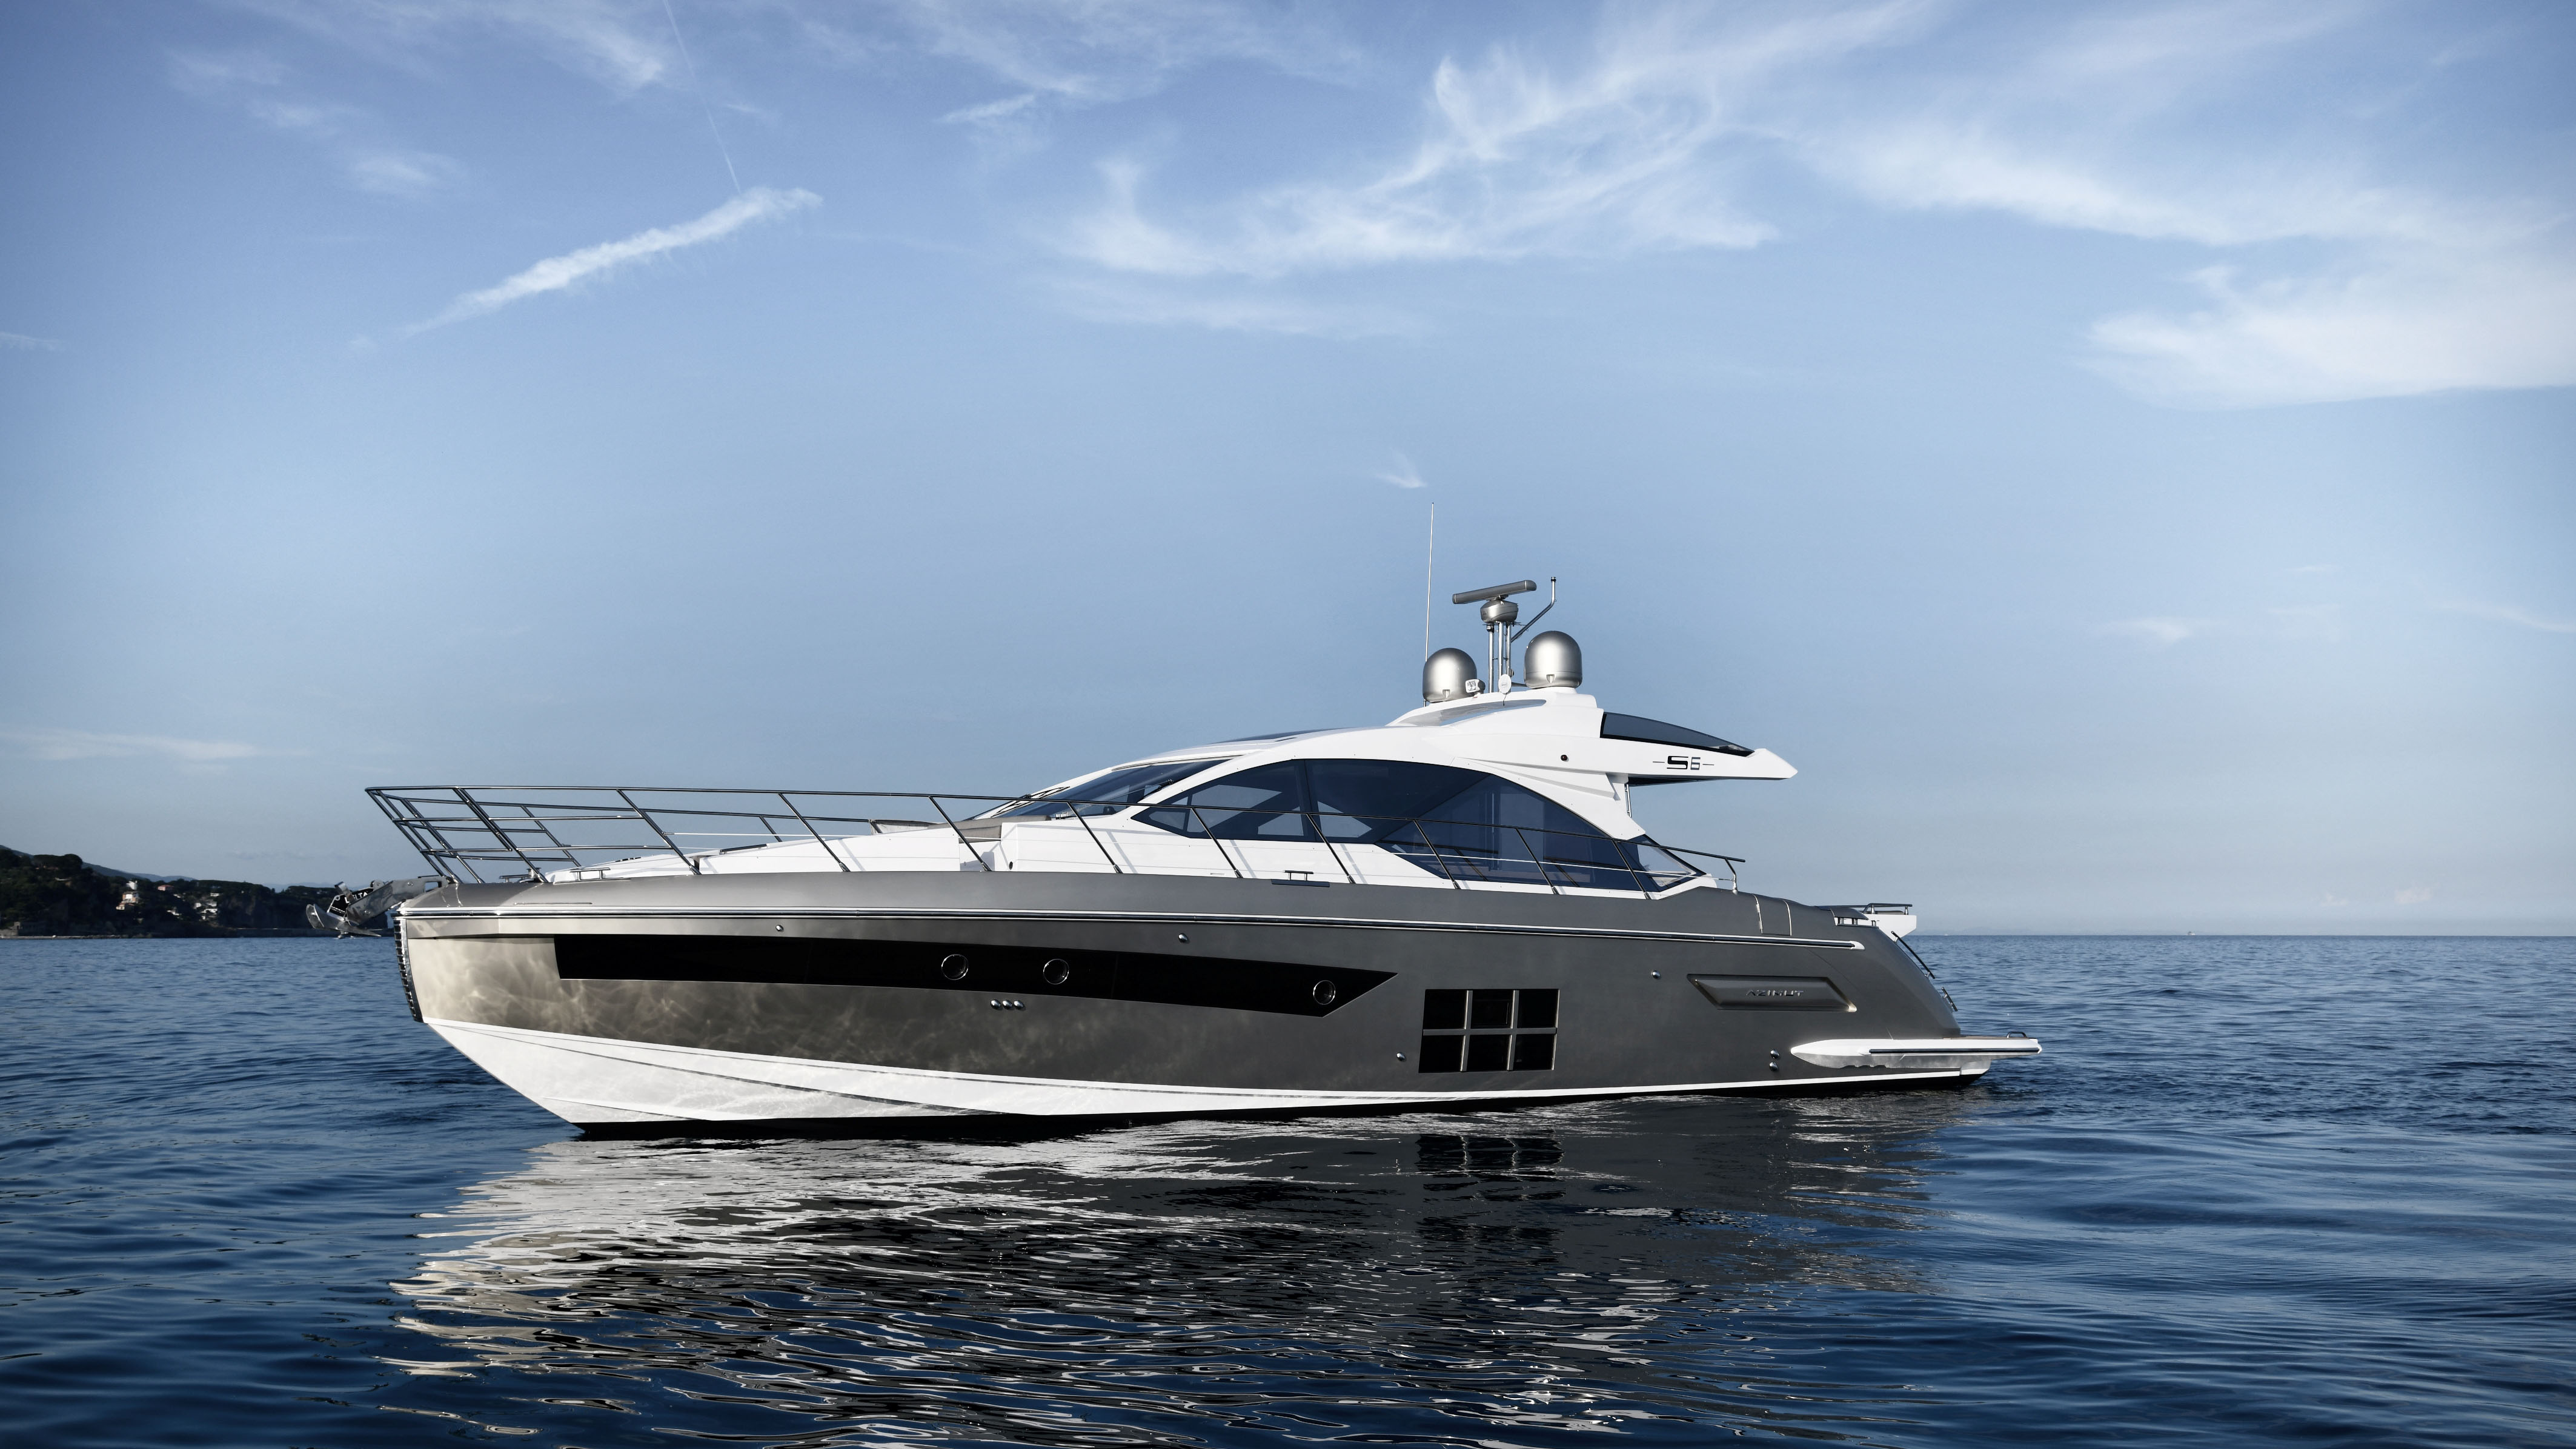 azimut-s6 external-view